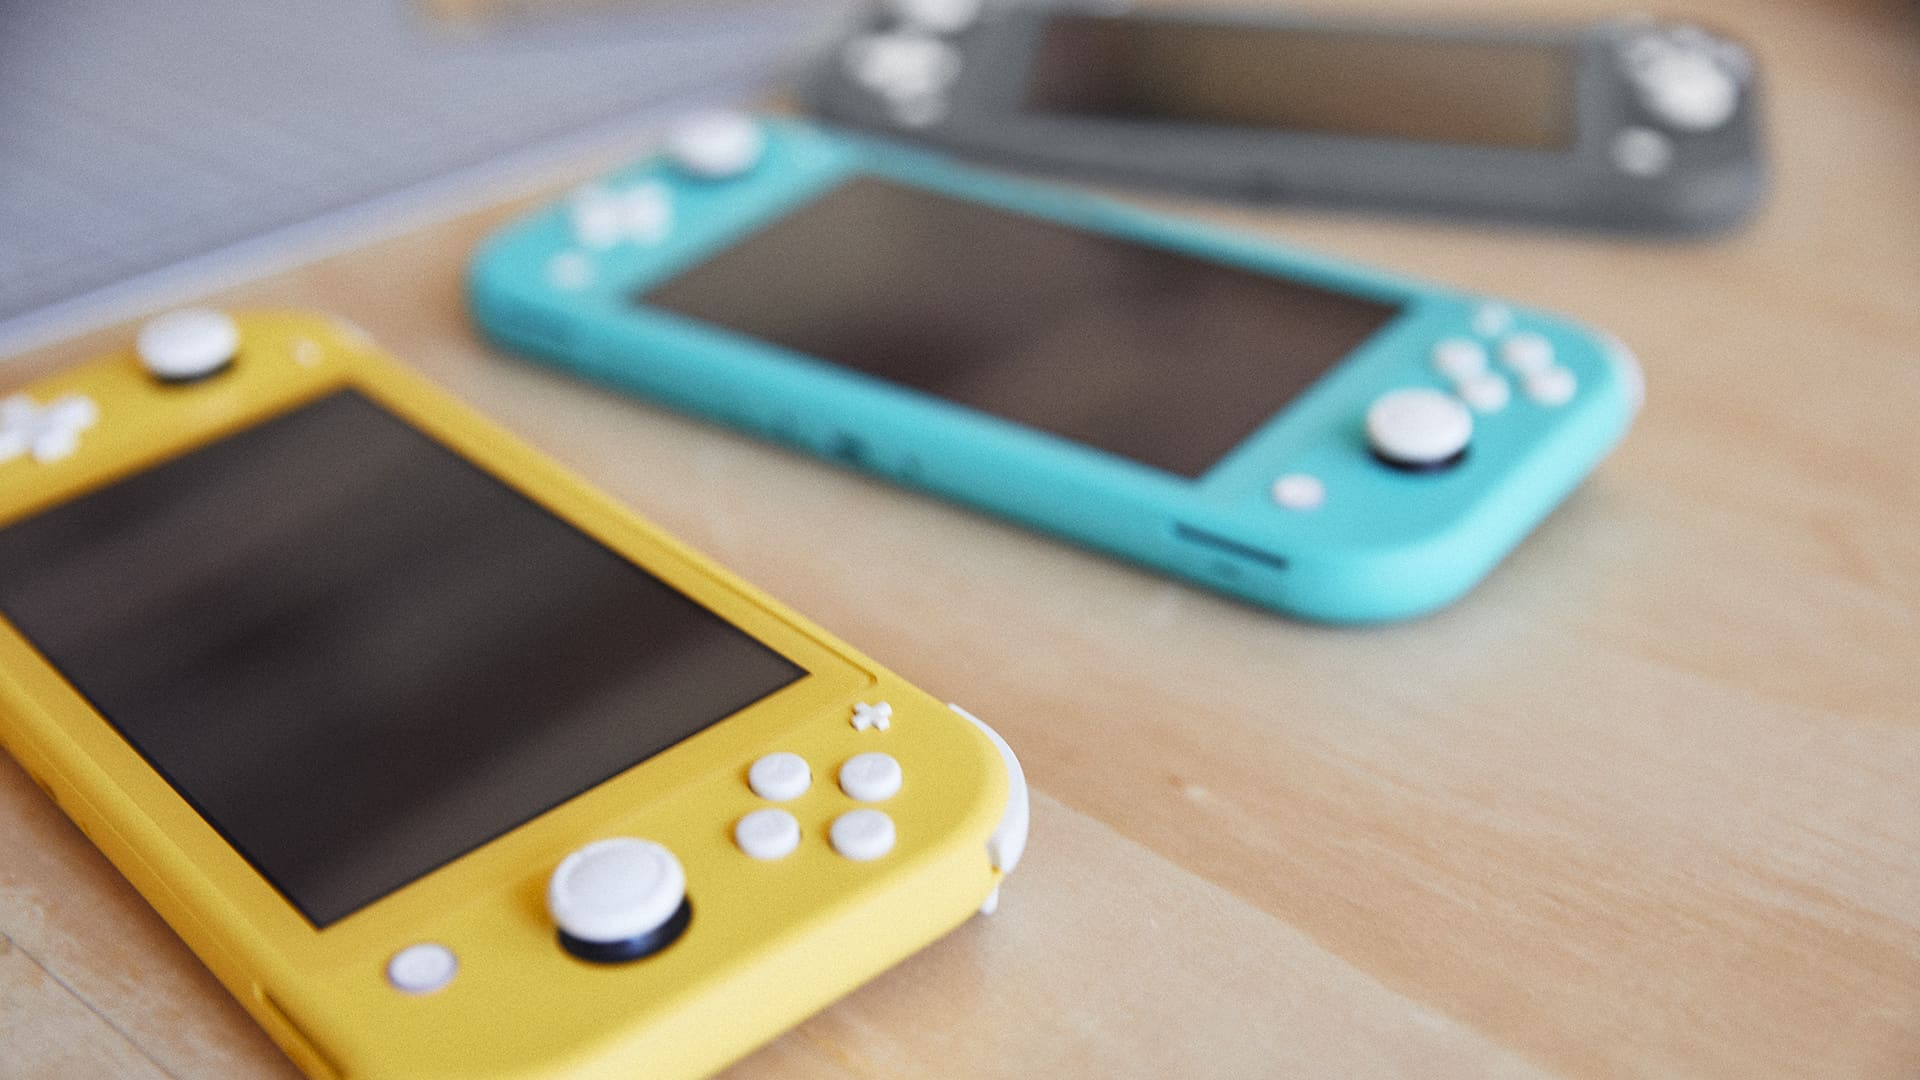 Nintendo Provides Important Advice For Keeping Switch Battery Working For Those Who Don't Game Often